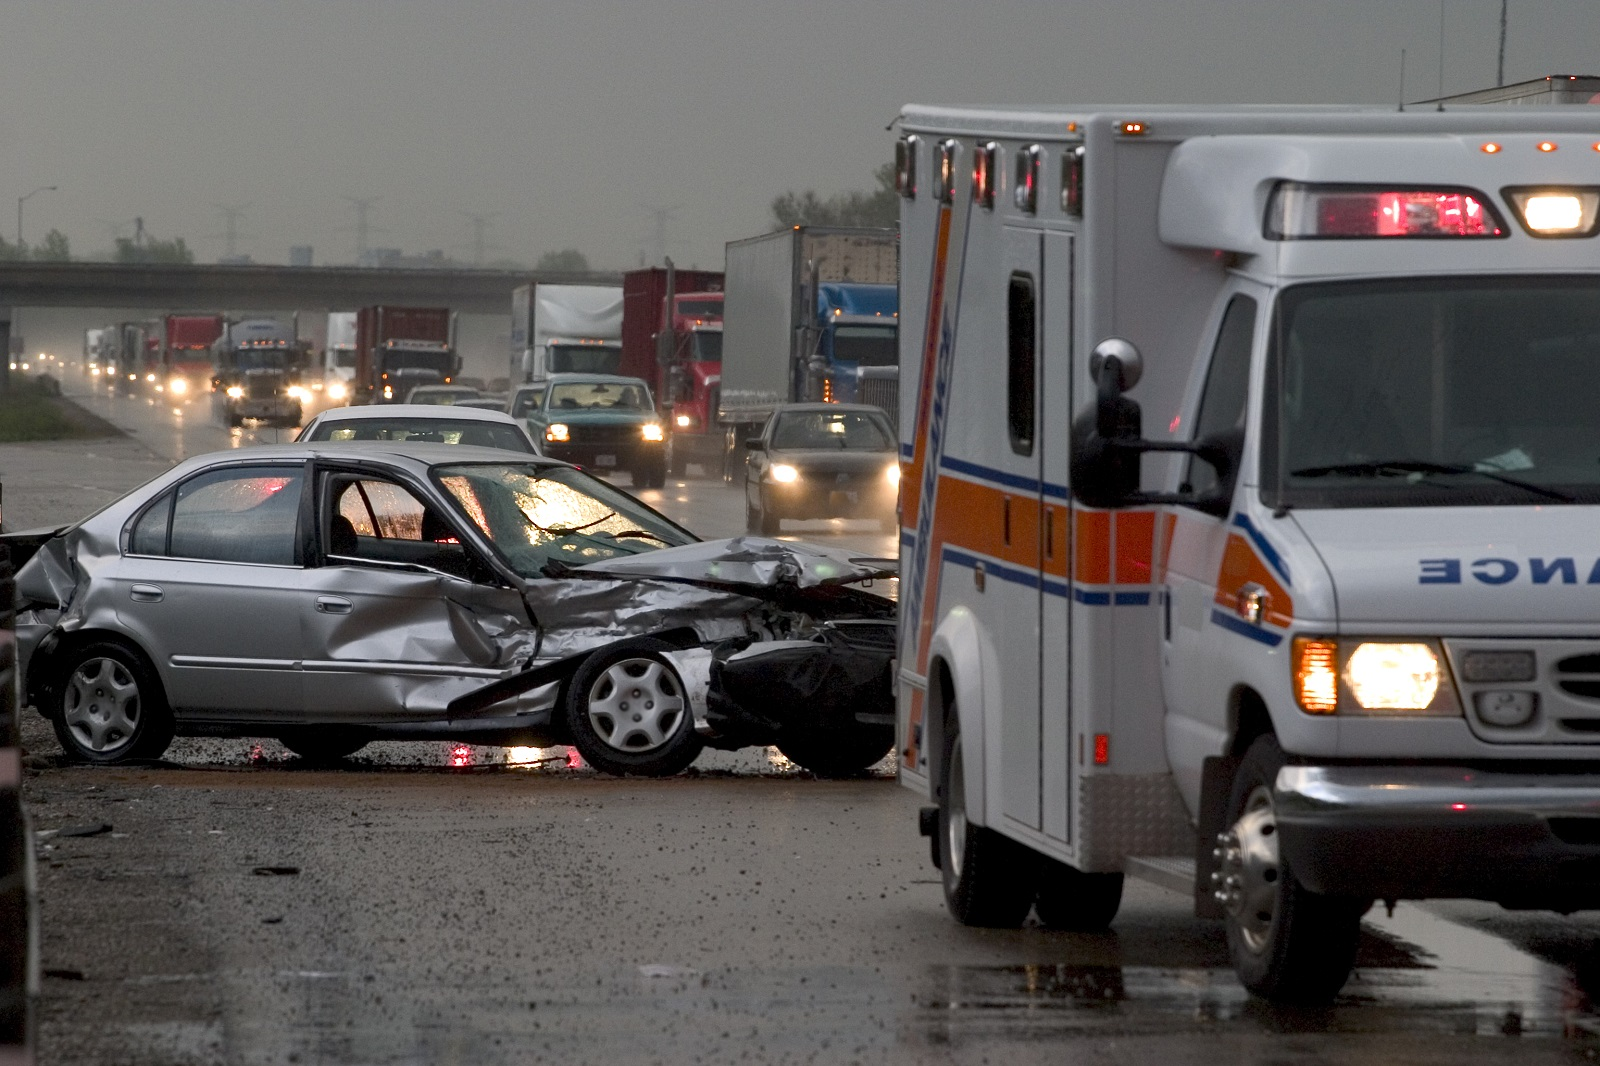 Auto Accident Injuries and Deaths